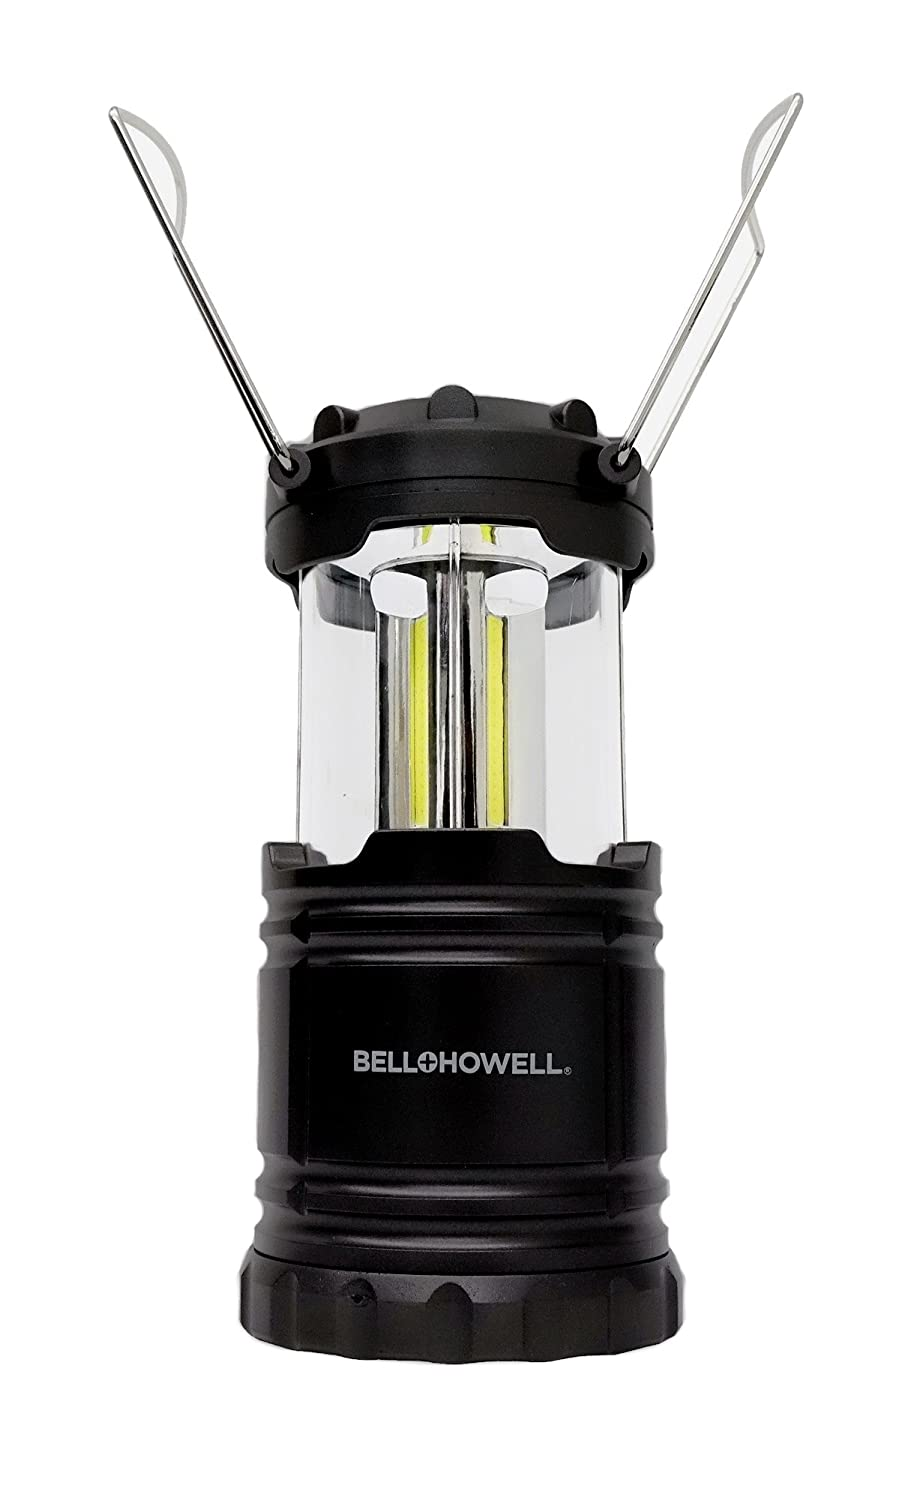 Bell Howell 1454 Taclight Lantern Portable LED Torch